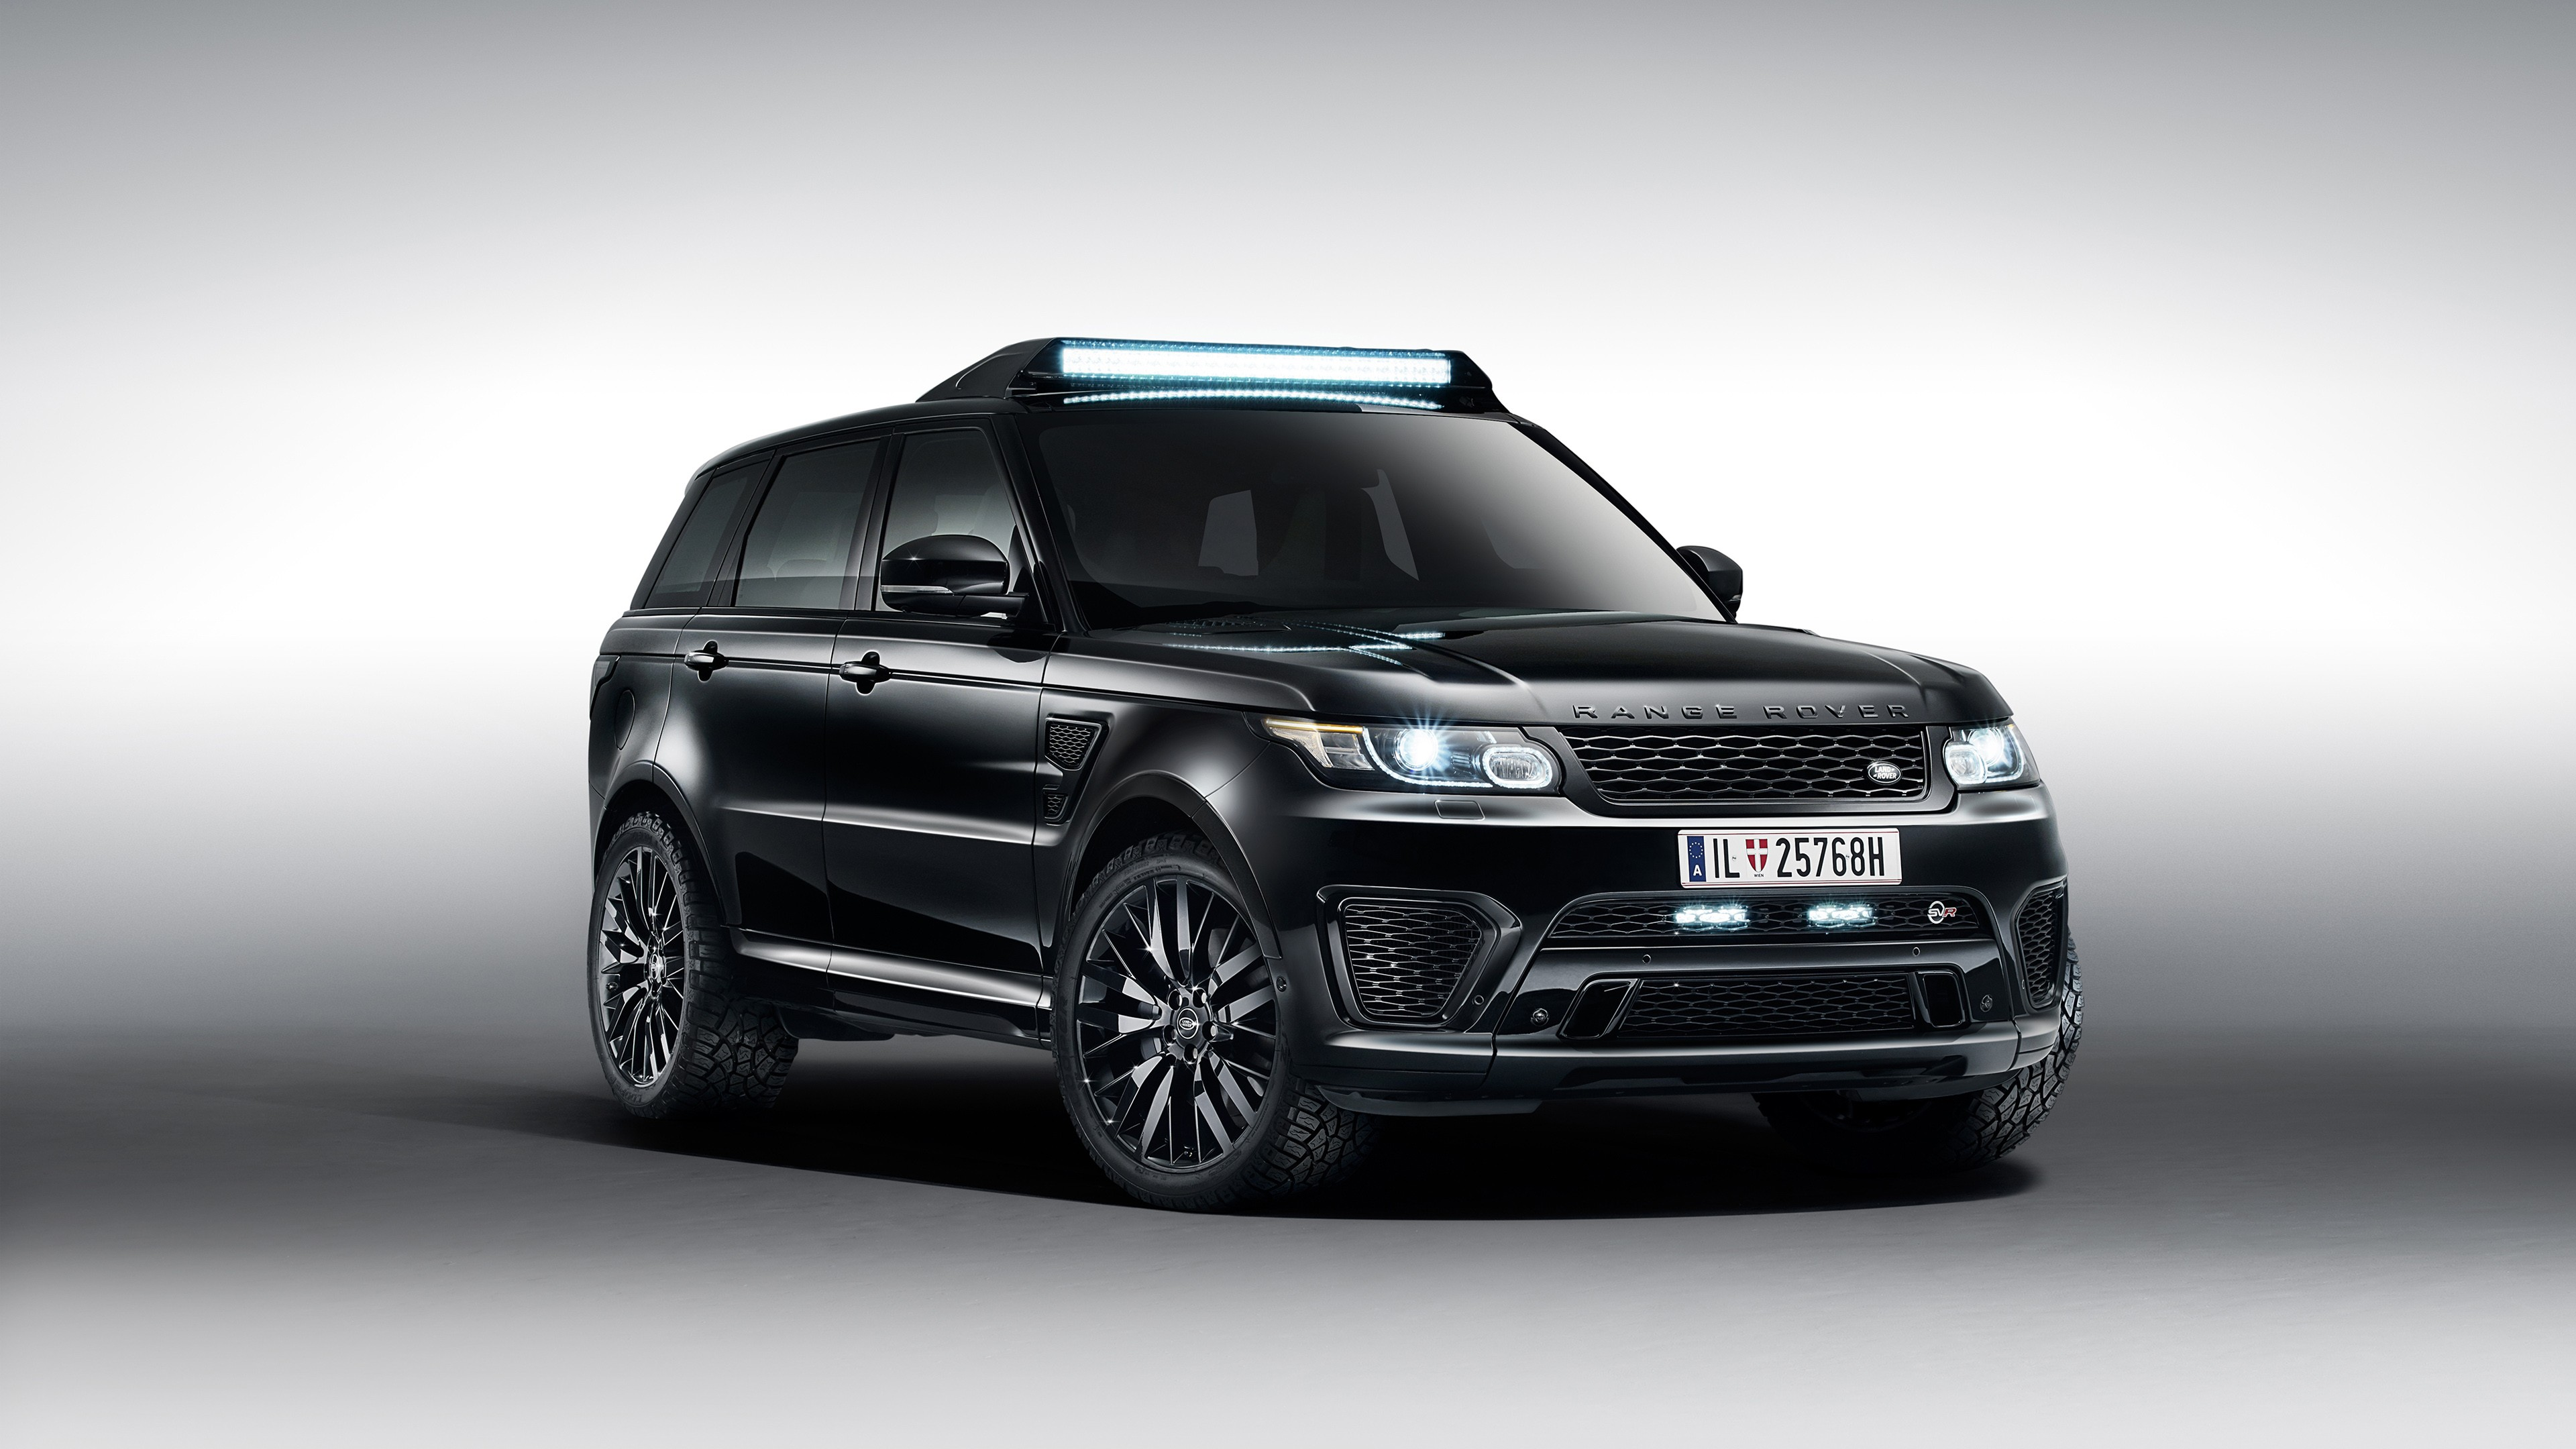 Range Rover Sport Iphone Wallpaper: 2015 Range Rover Sport Wallpaper